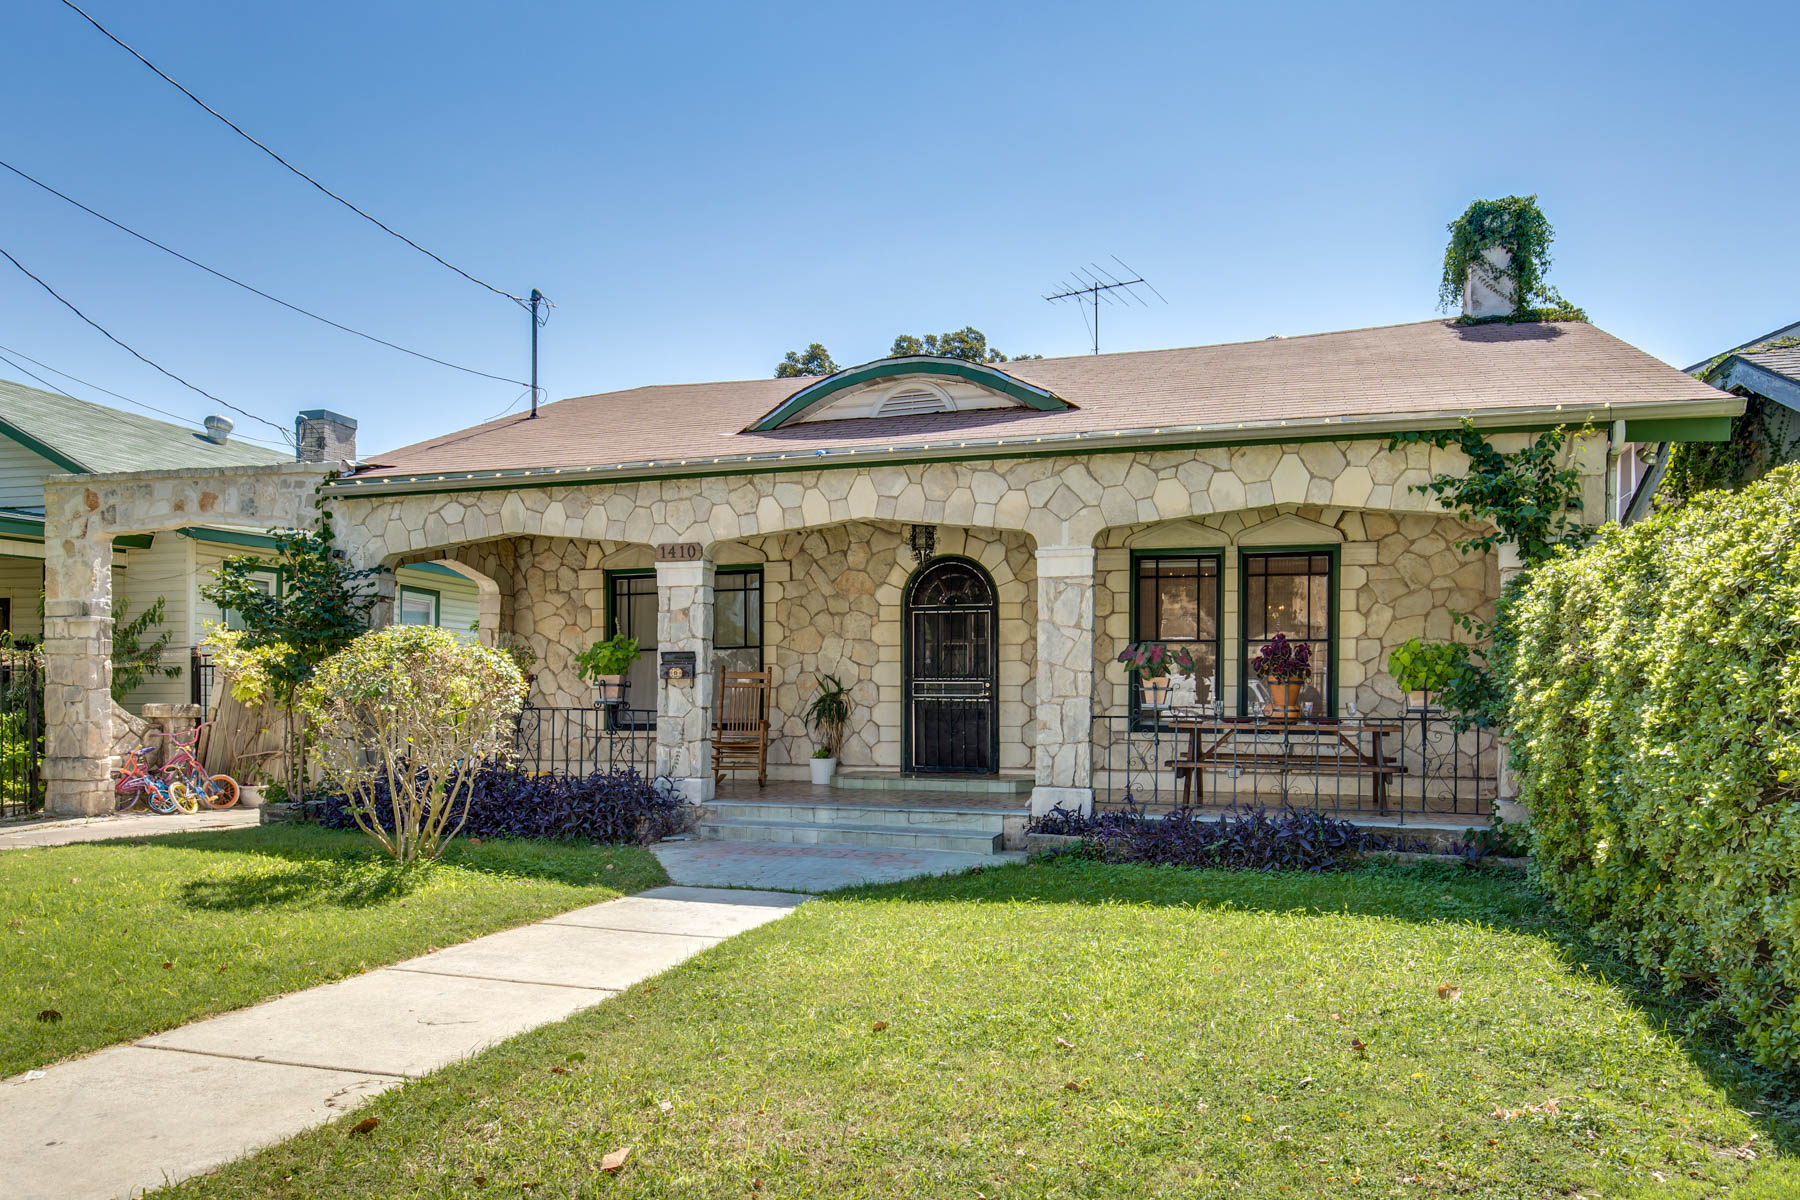 Single Family Home for Sale at Urban Living Inside Loop 410 1410 W Ashby Pl Five Points, San Antonio, Texas 78201 United States